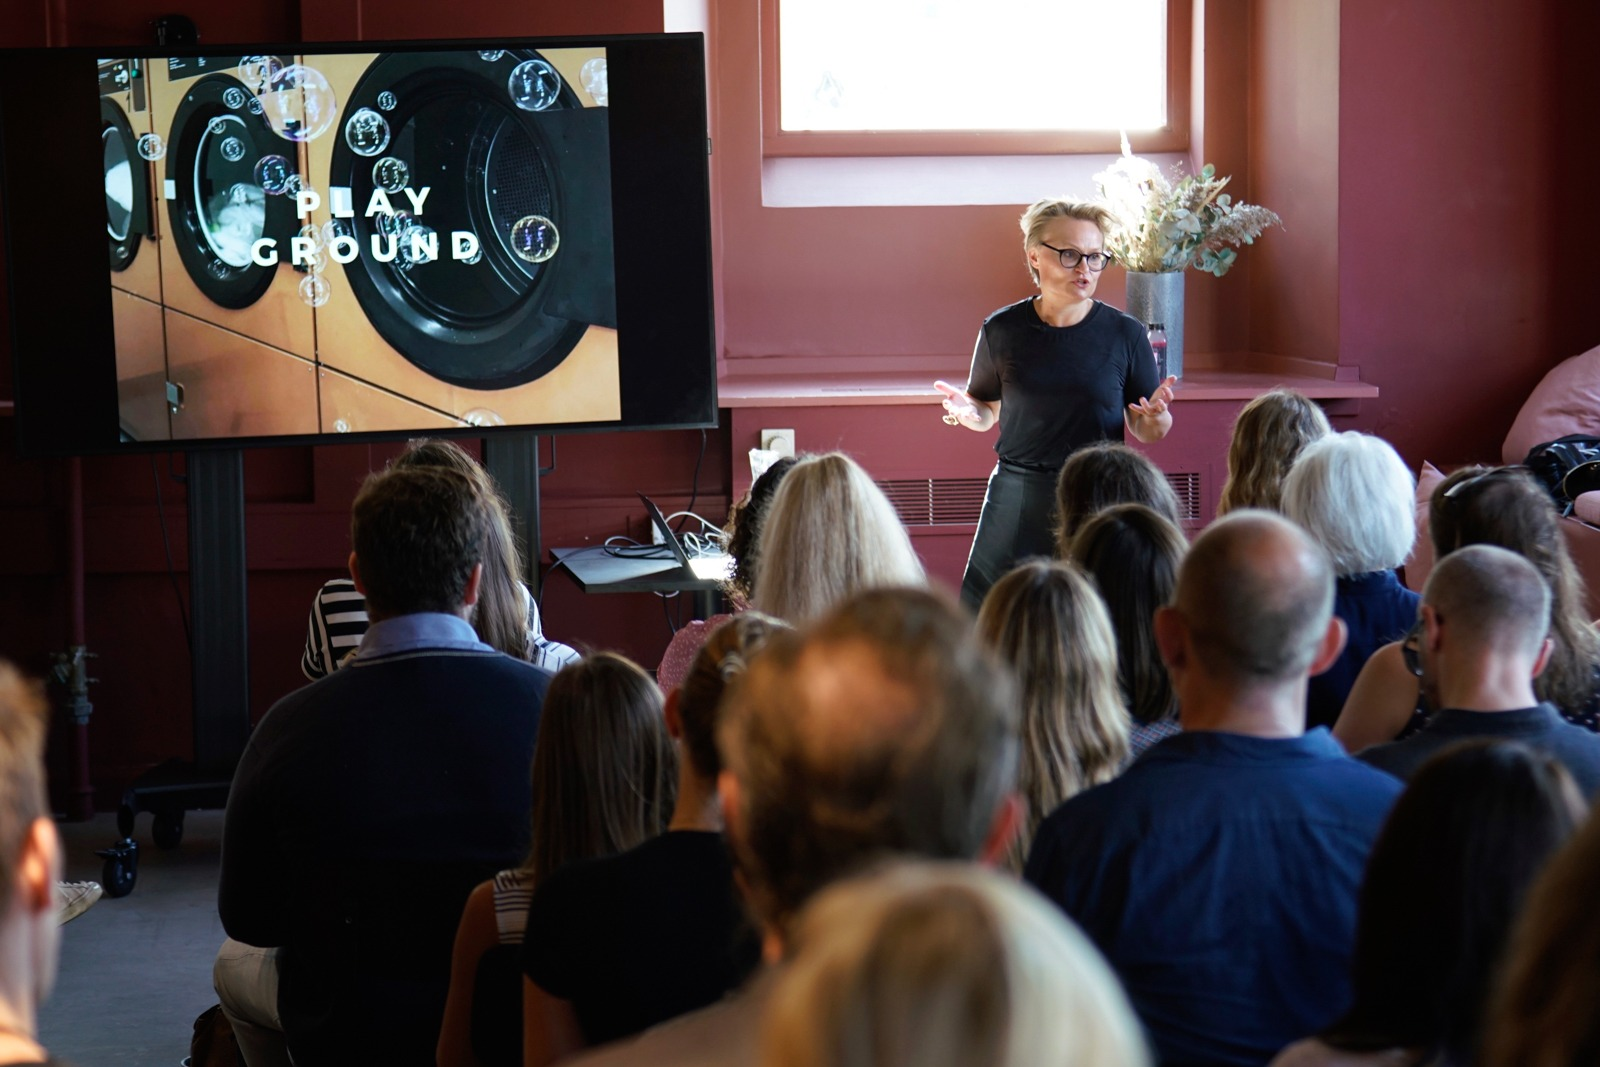 Event photography: Mette Willert - todays speaker - shot with Lomography Neptune